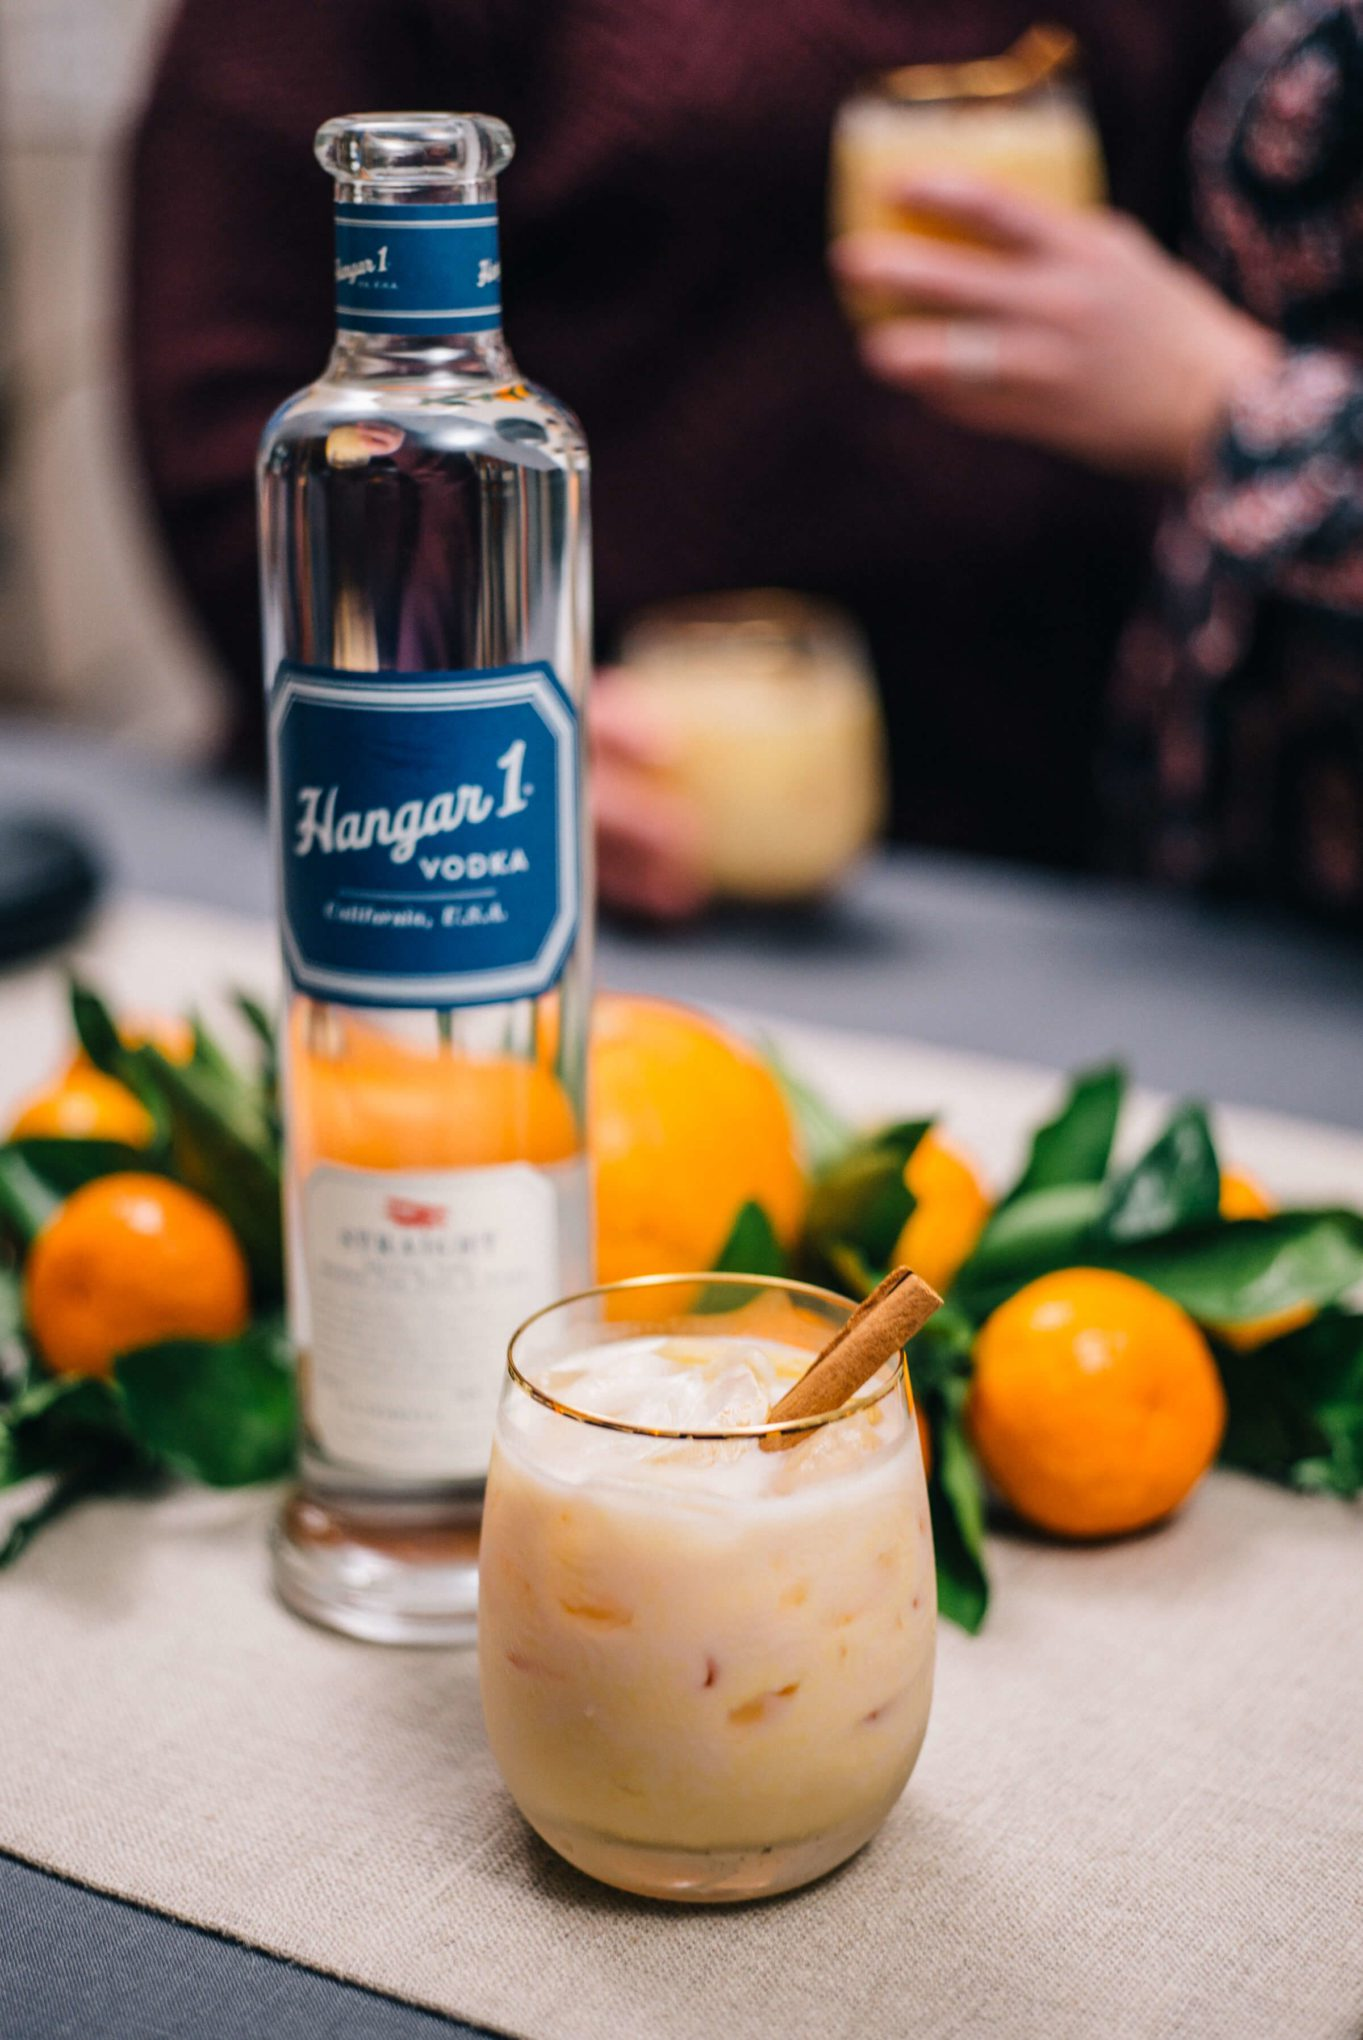 The Taste SF makes Pumpkin Spice Cocktails with Hangar 1 Vodka for Friendsgiving or Thanksgiving and parties, the best pumpkin cocktail we've tried with ginger and cinnamon